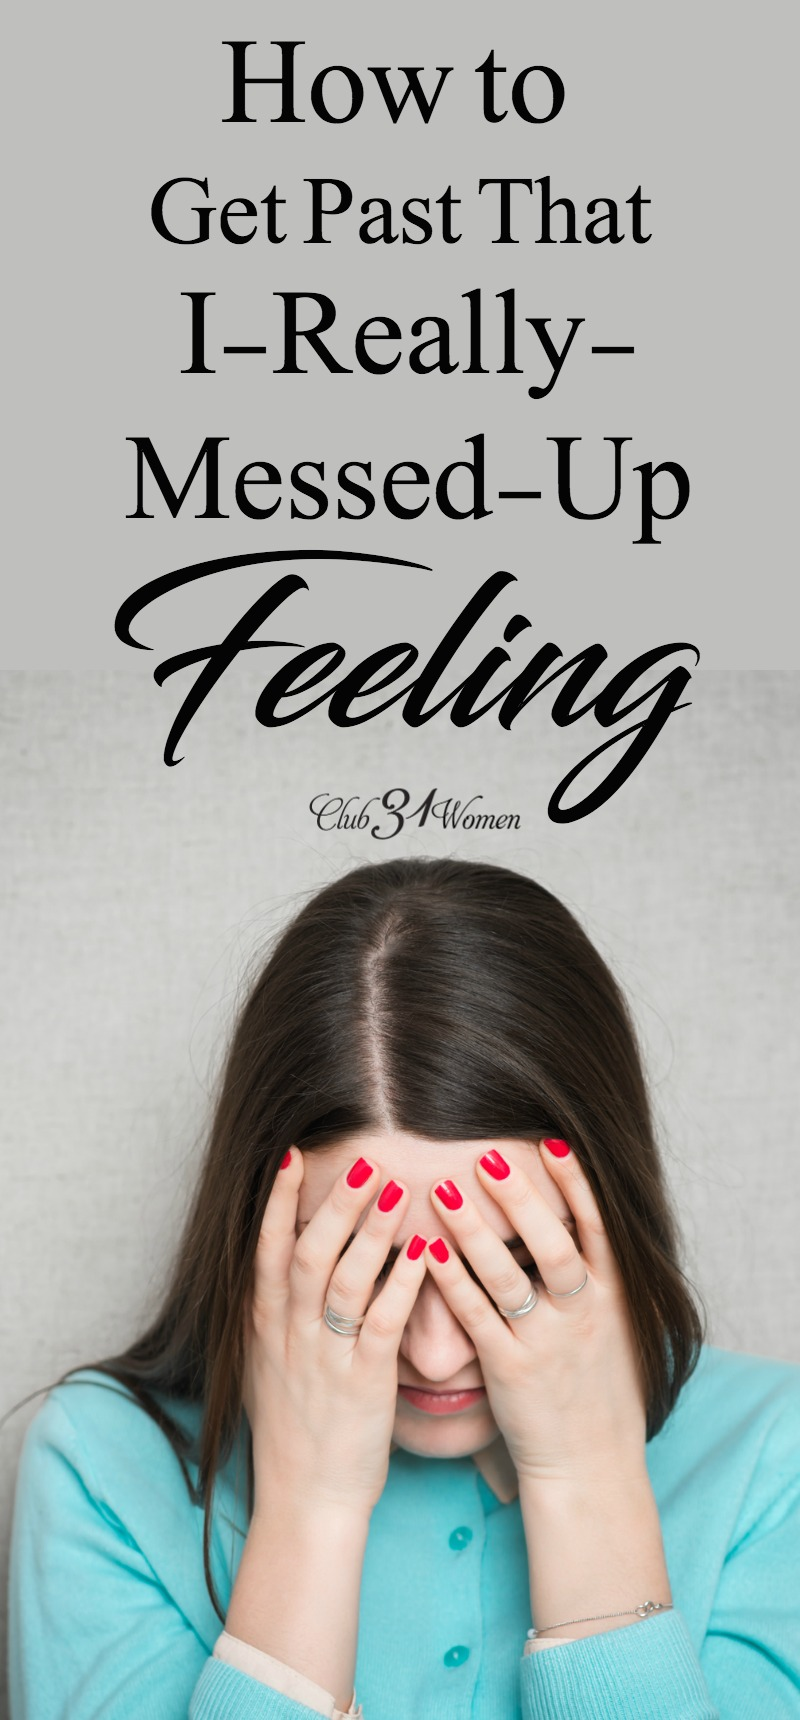 Have you ever had that feeling? You know the one...when you know you really messed up? When you let someone down? How can you get past it and move forward? via @Club31Women